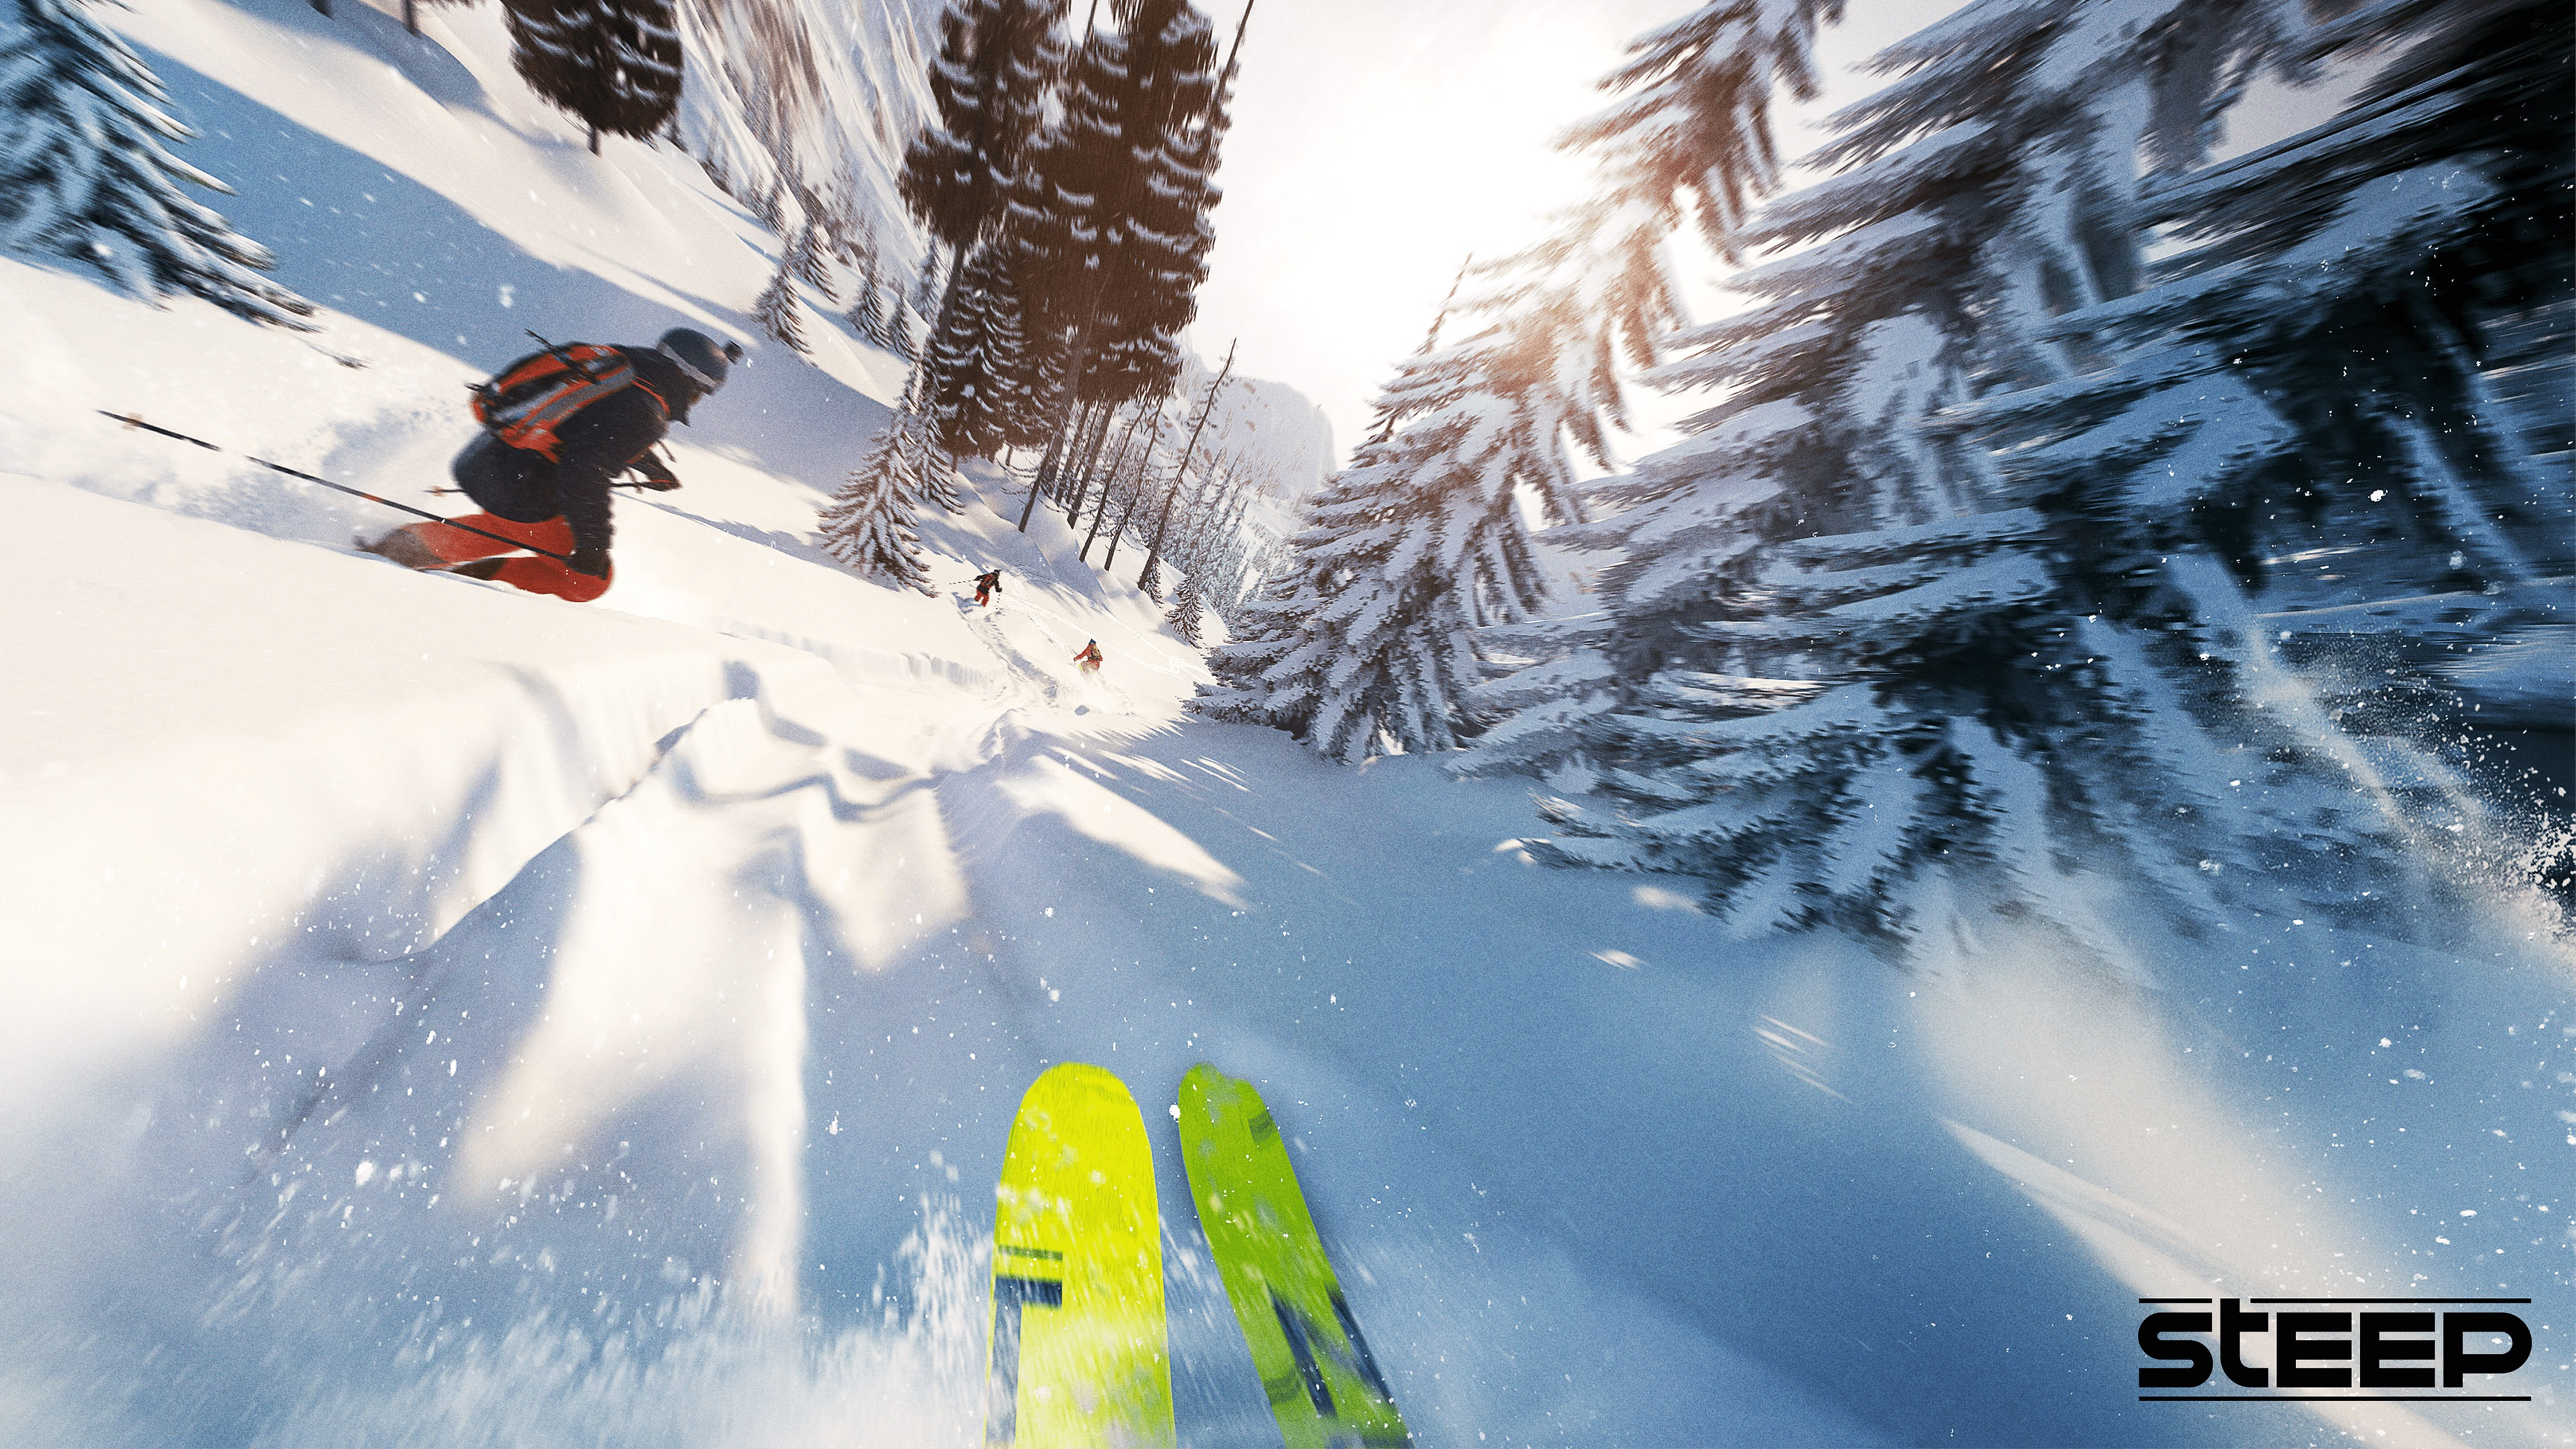 Ski competition Steep Game 4K - 3840x2160 wallpaper download